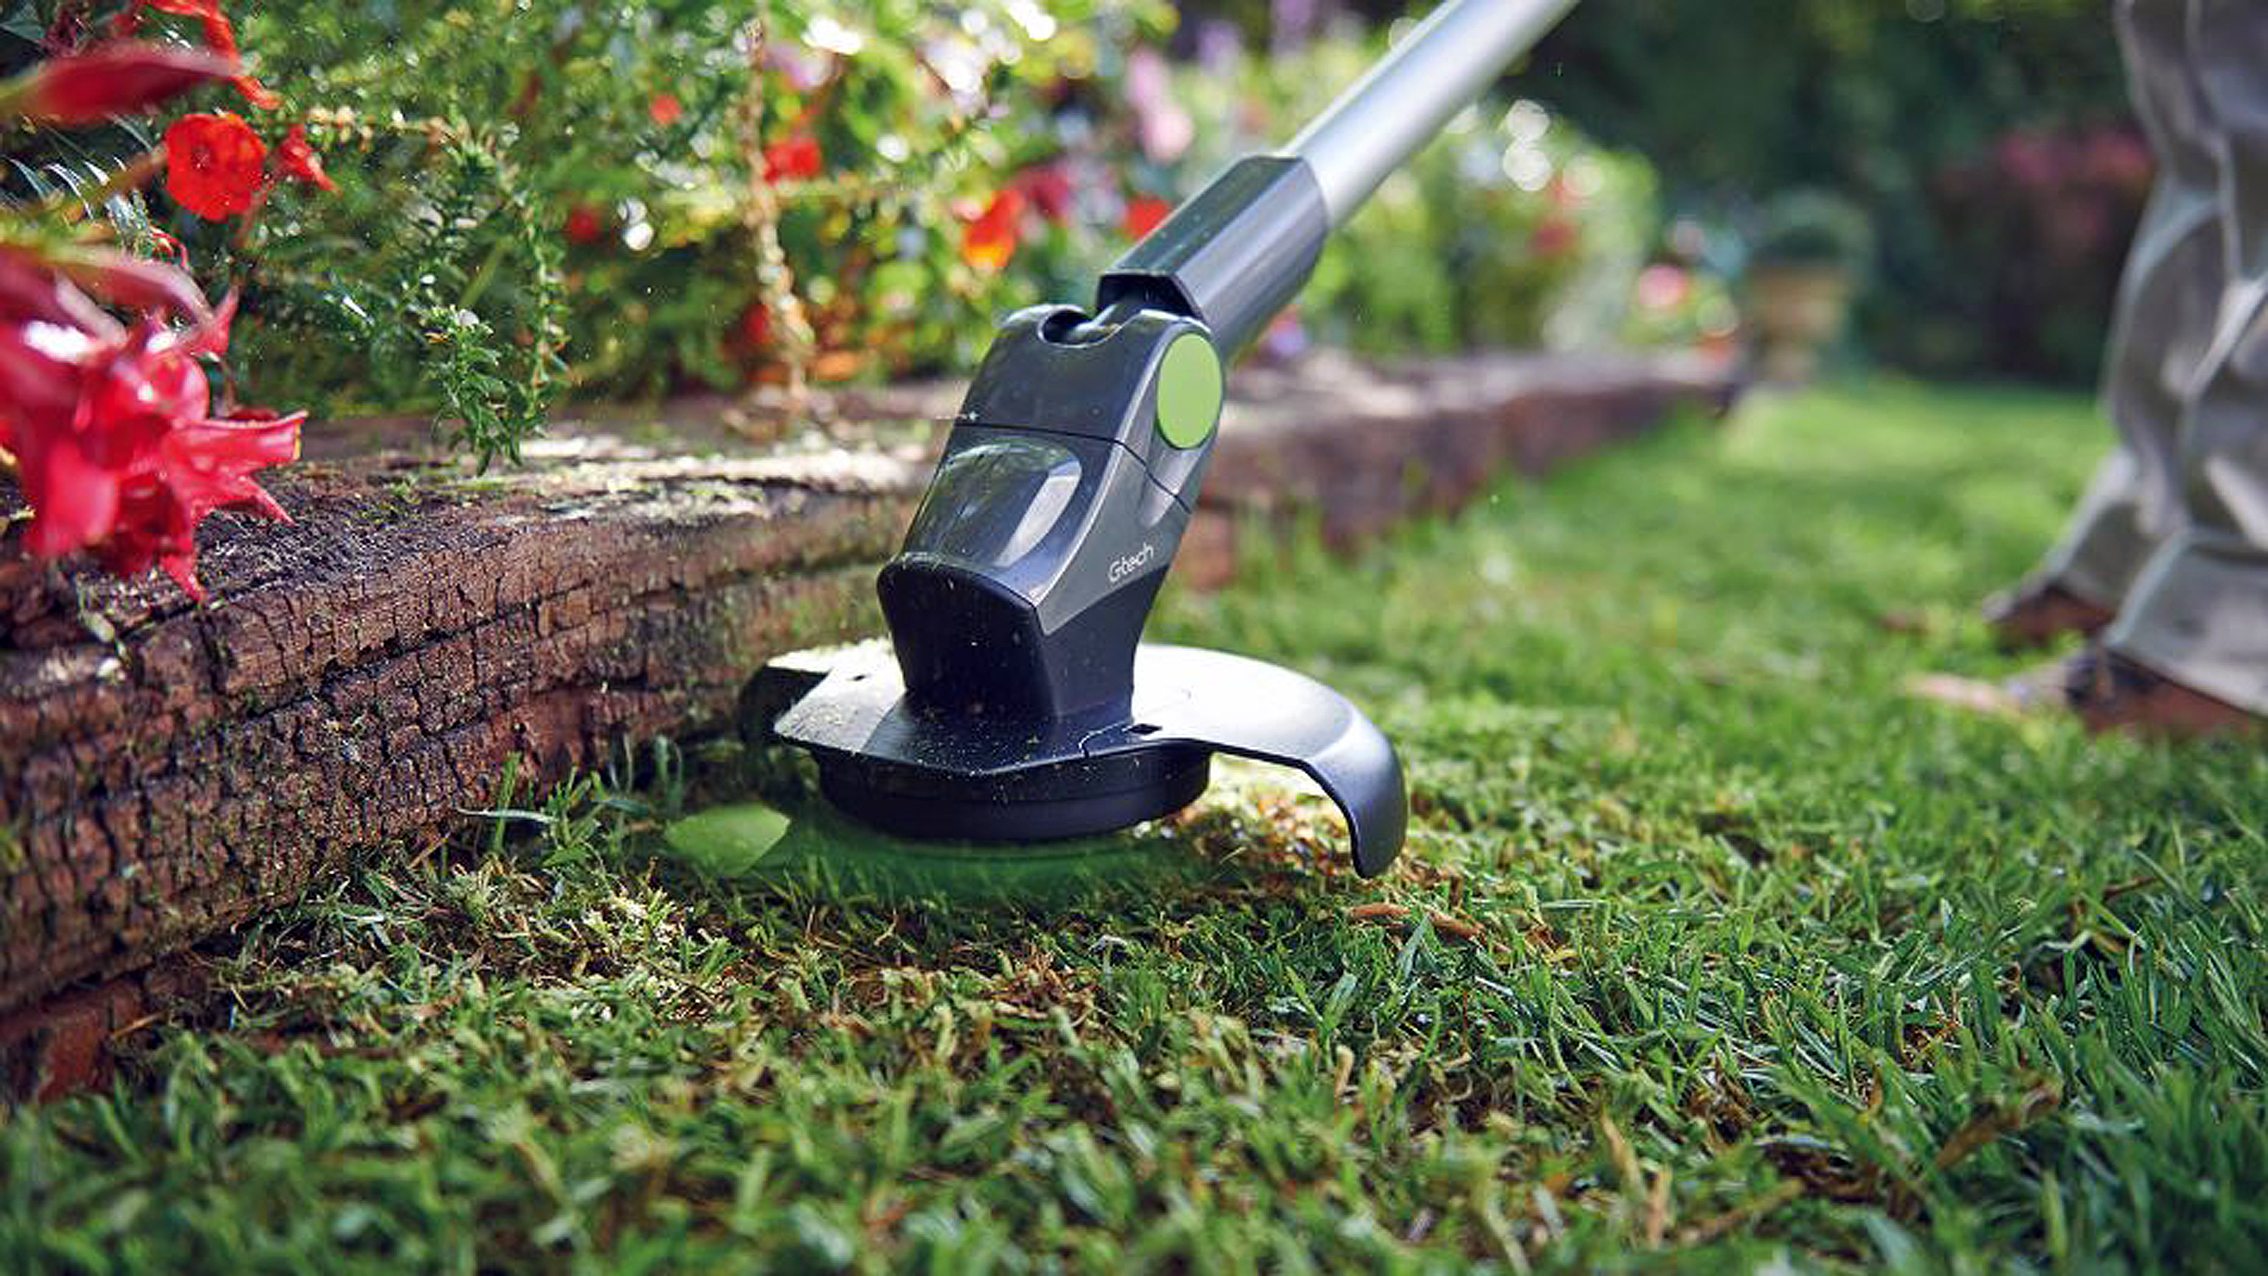 Best strimmer 2019: the cutting tool of choice for trimming grass